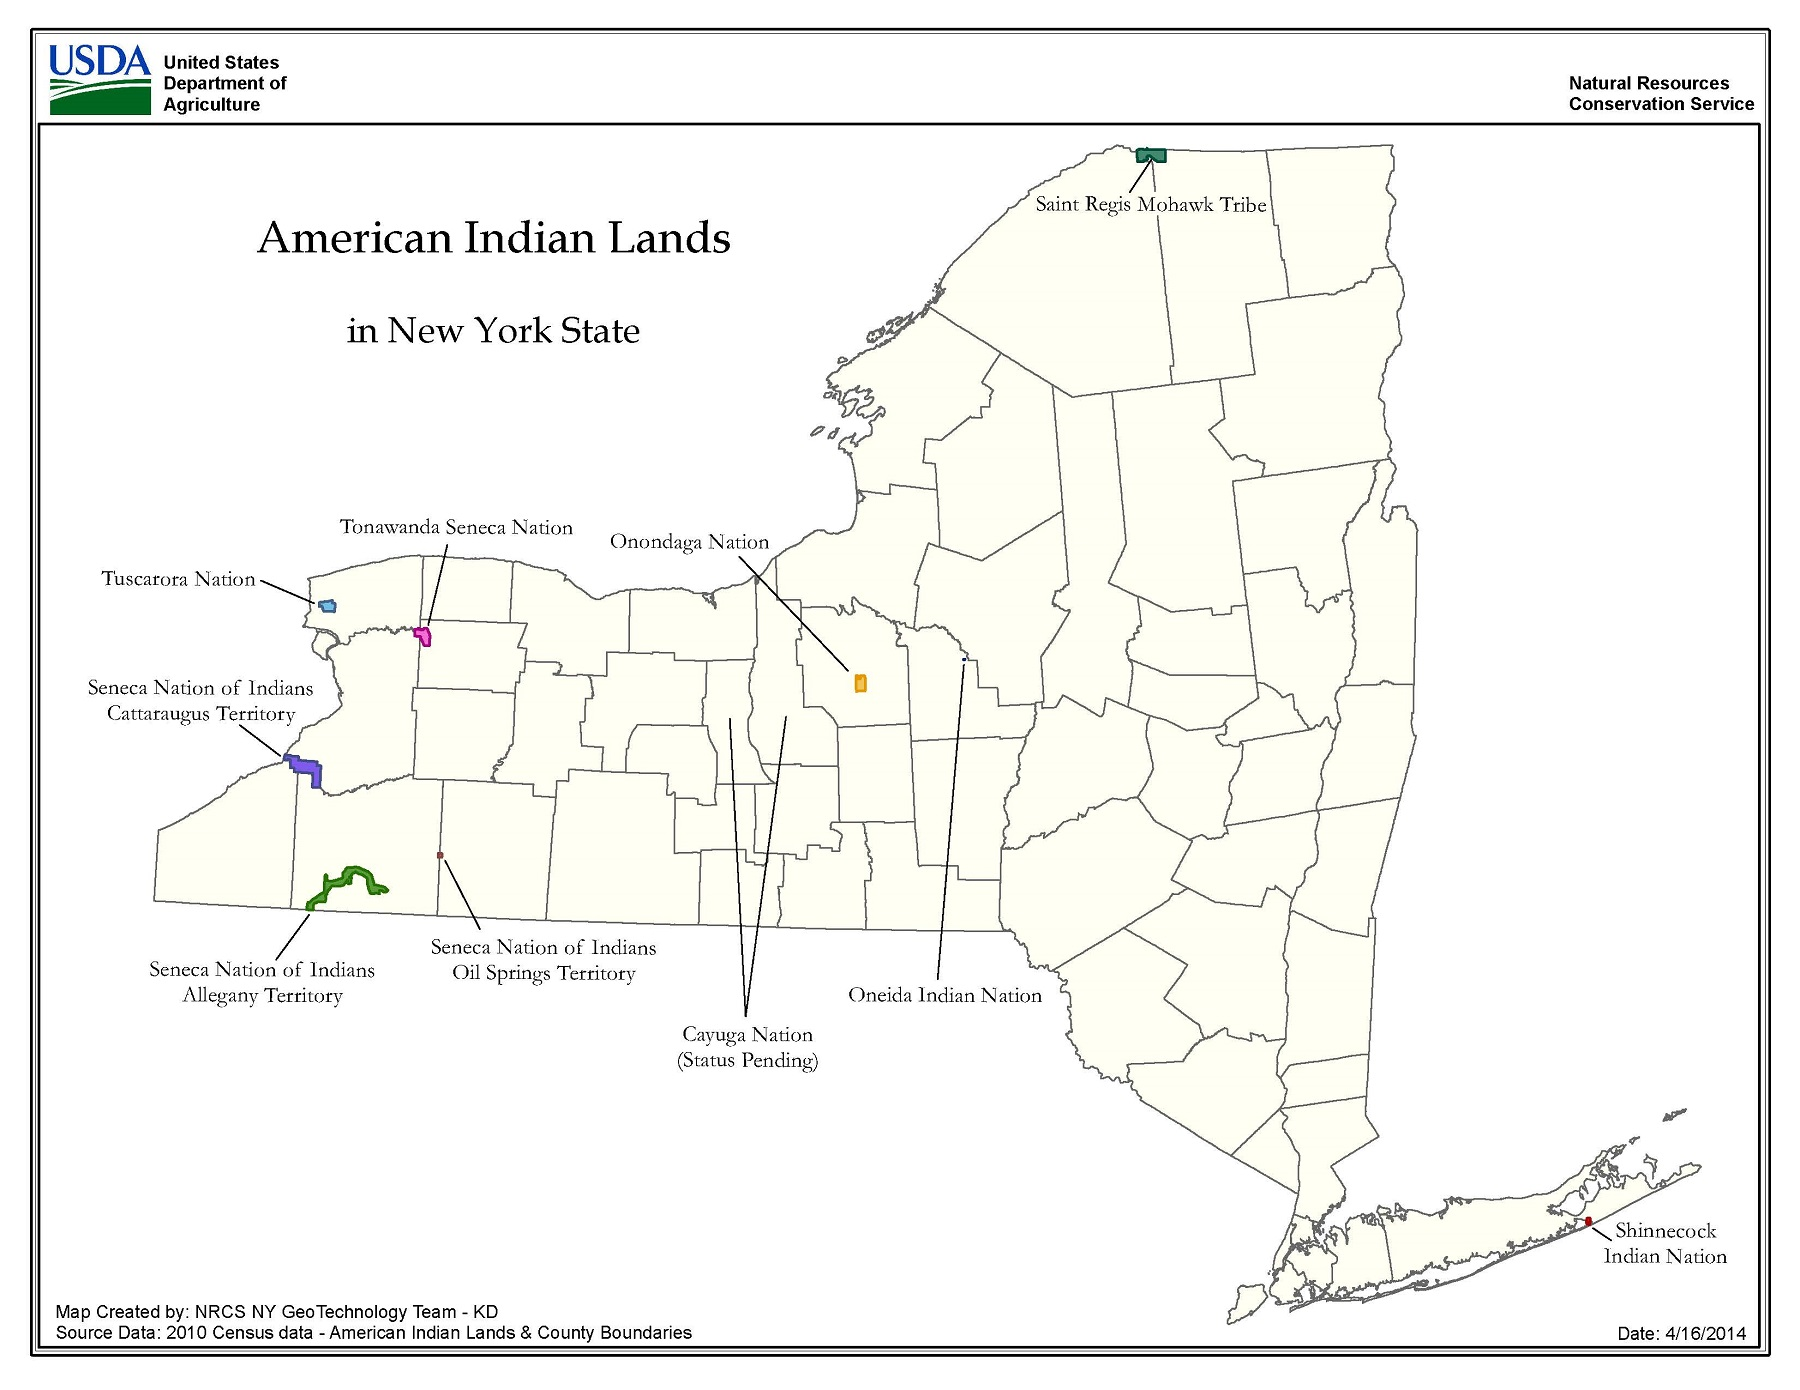 federally and state recognized nation and tribal american indian lands in new york state